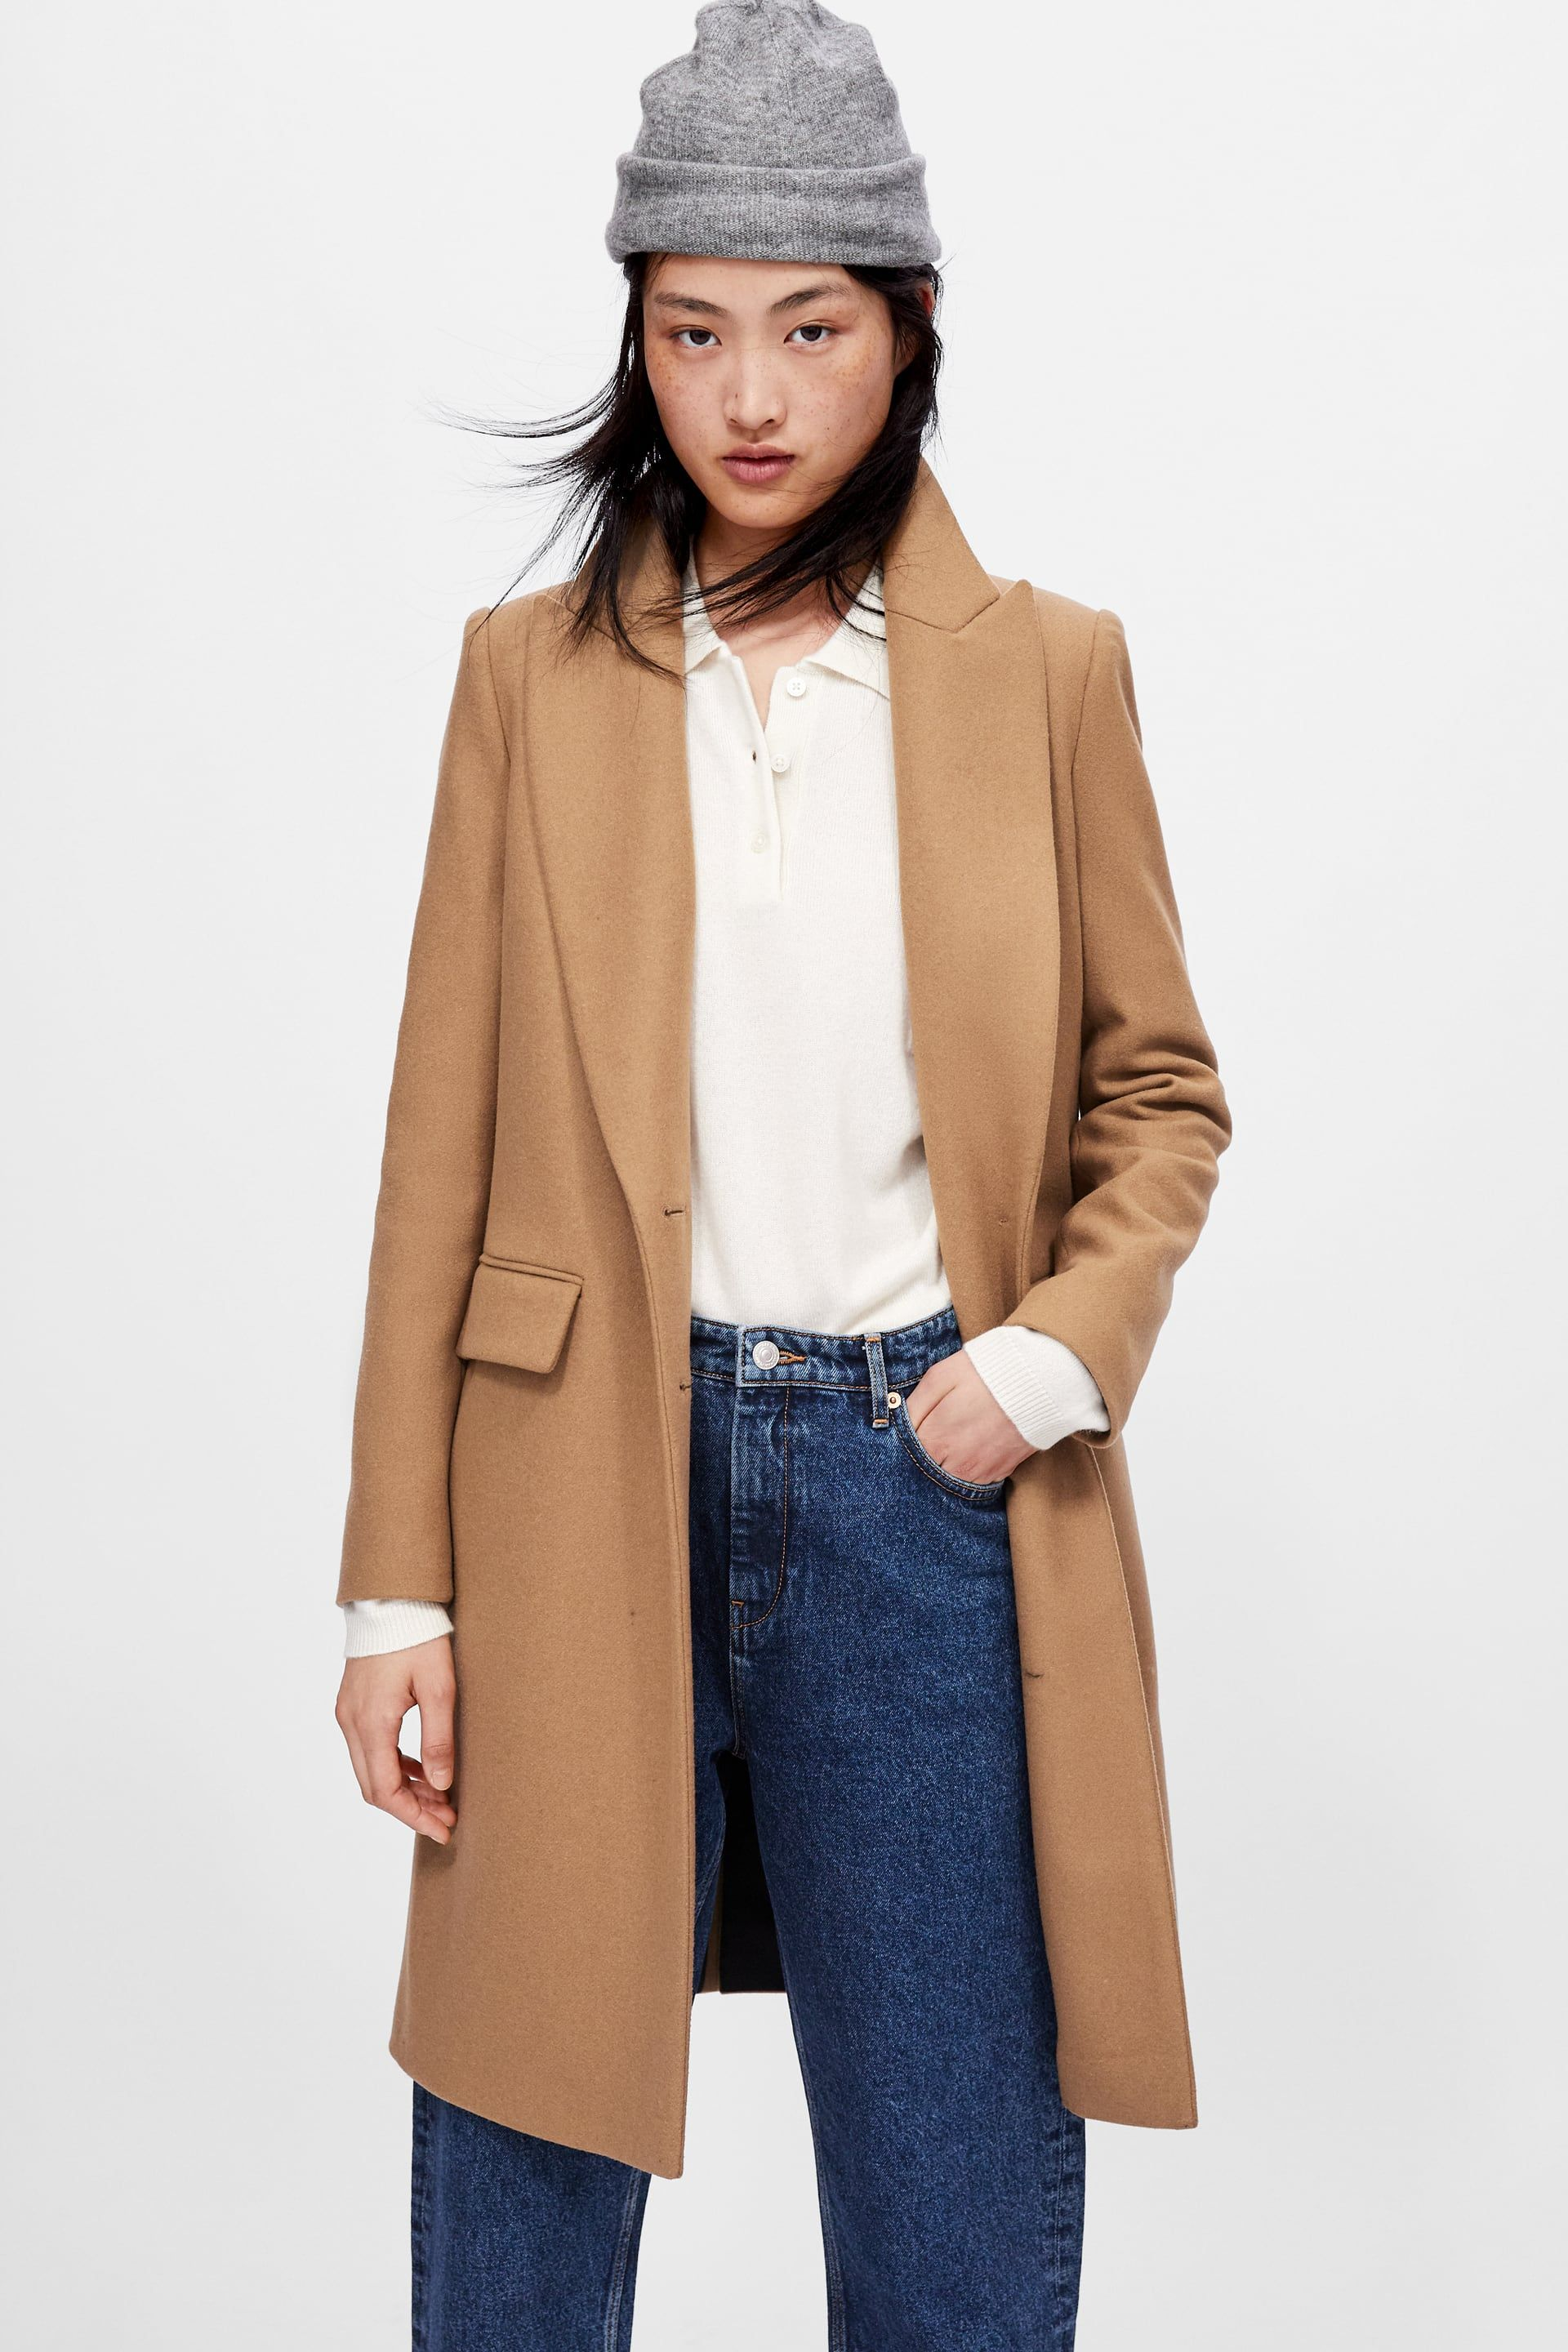 a526d9bd Masculine coat | My Style | Coat, Fashion, How to wear